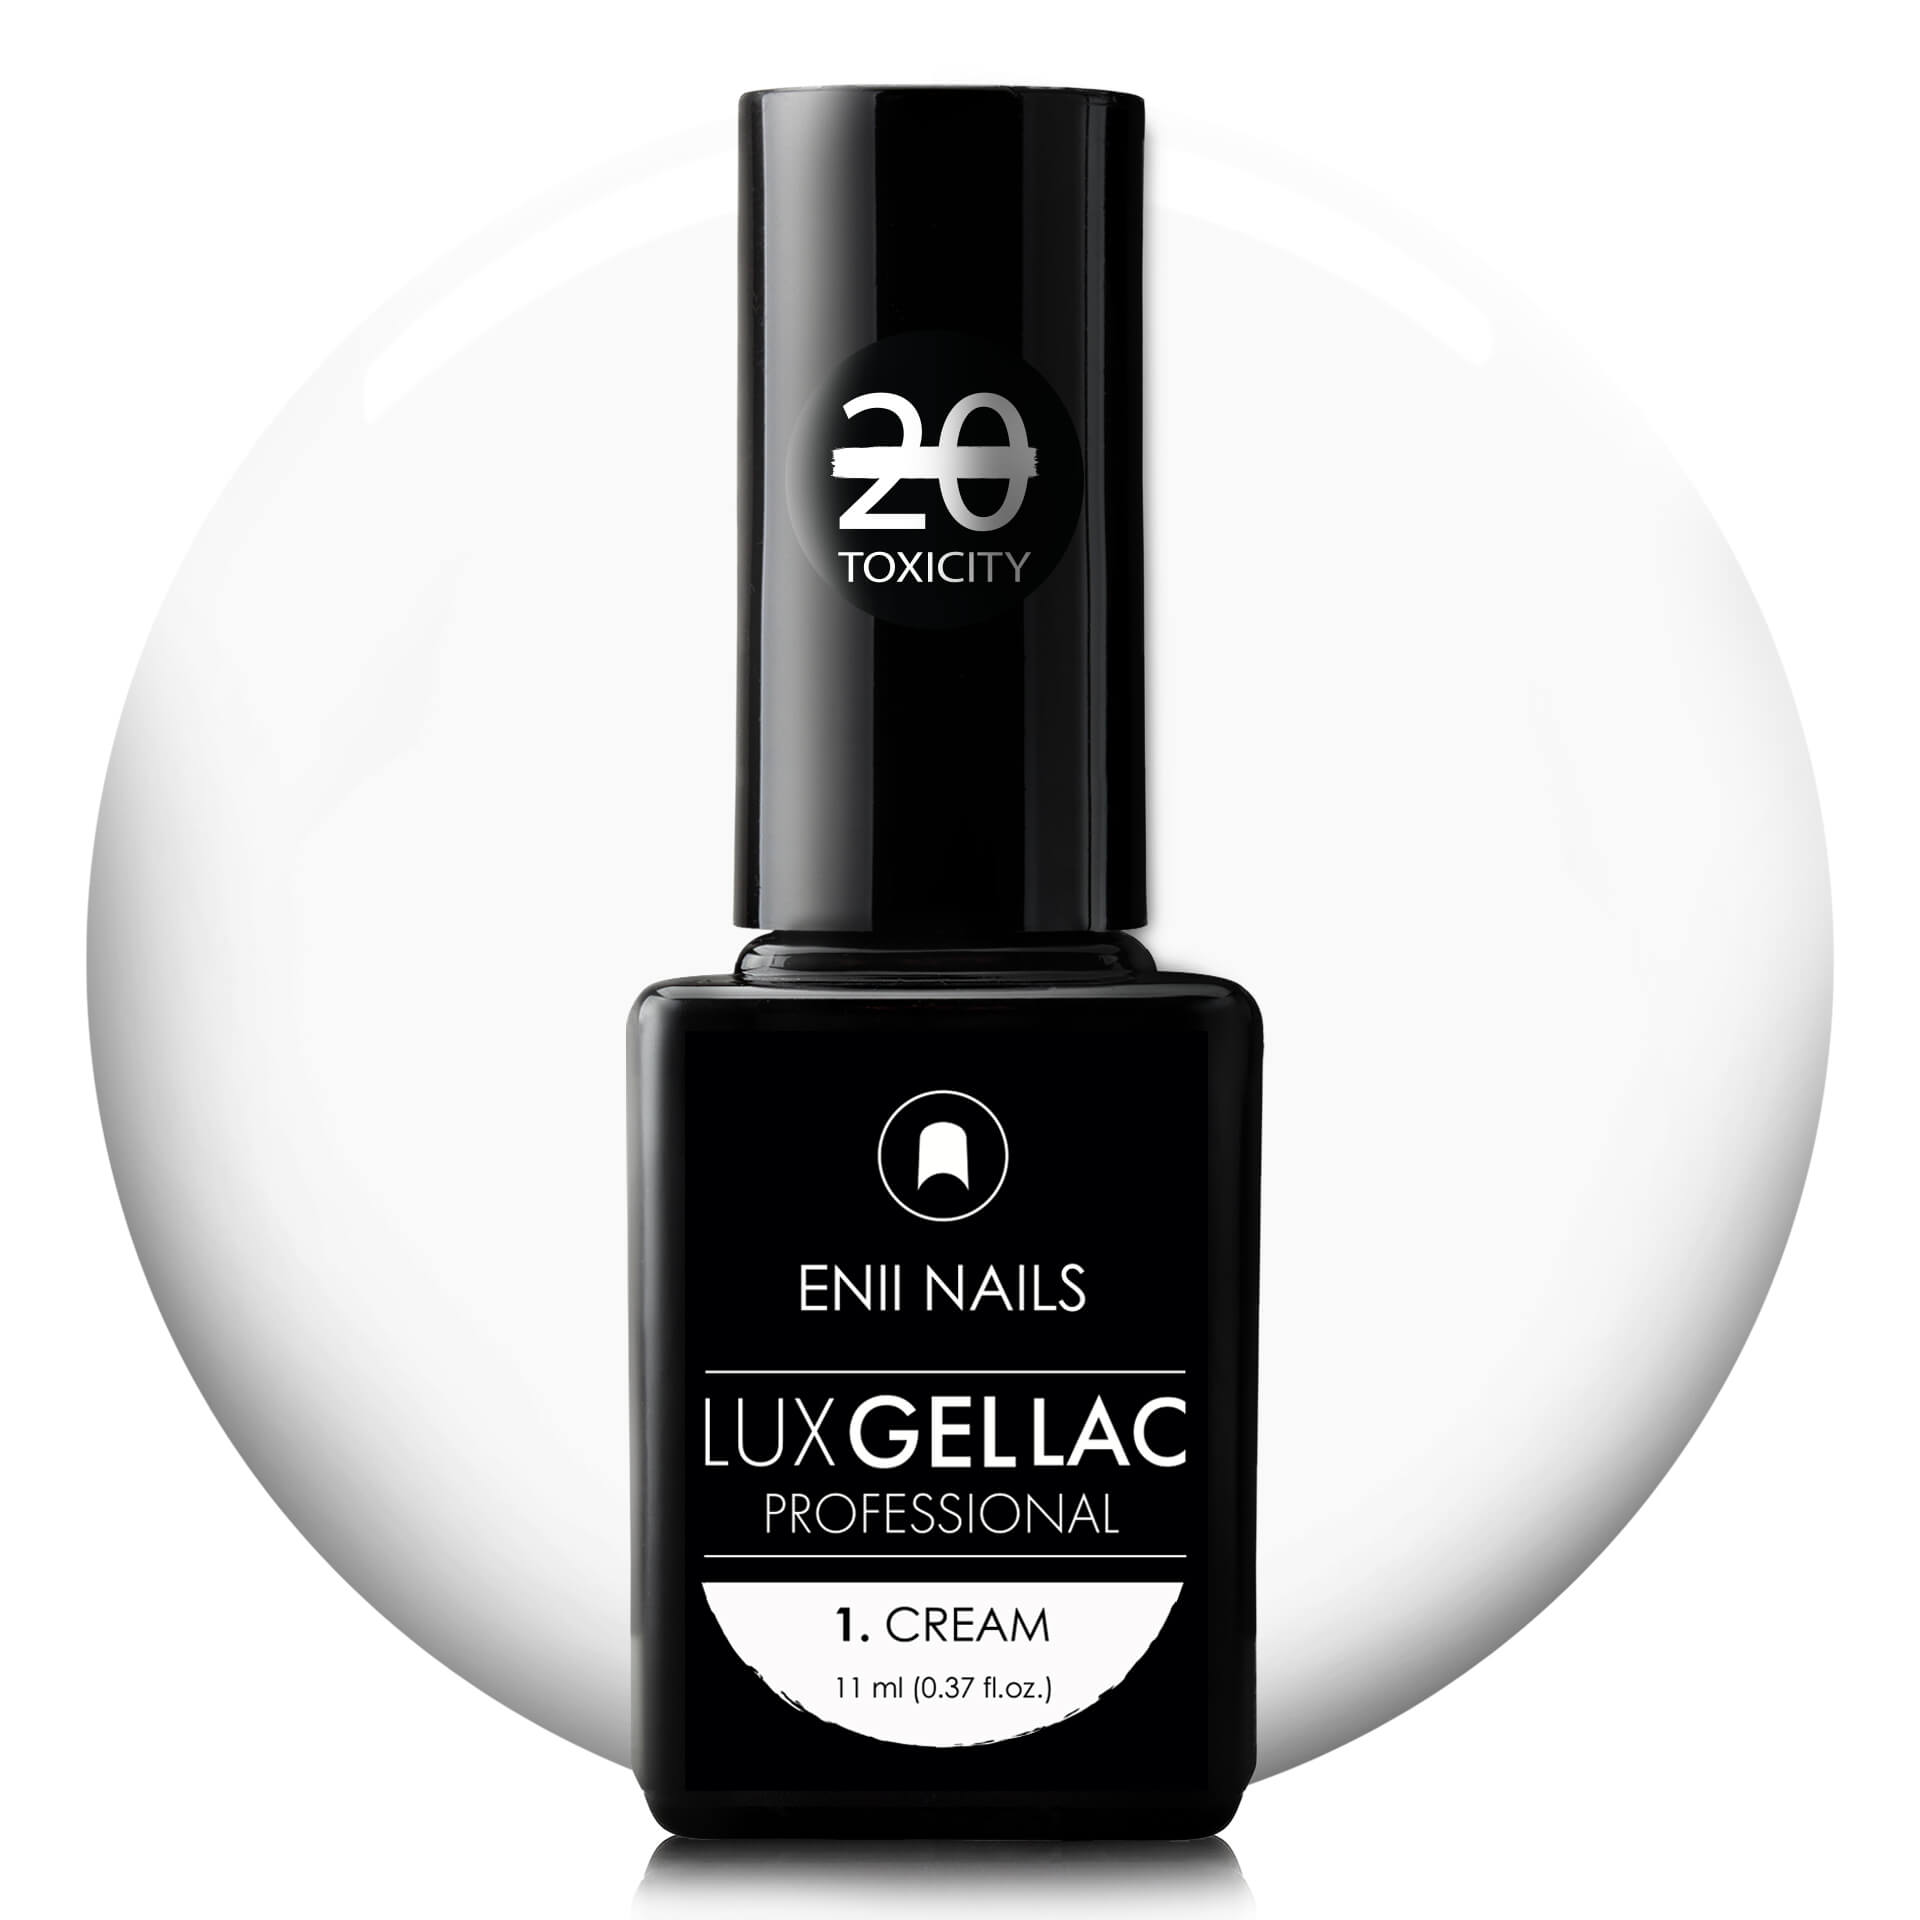 ENII-NAILS LUX GEL LAC 1. CREAM 11 ml